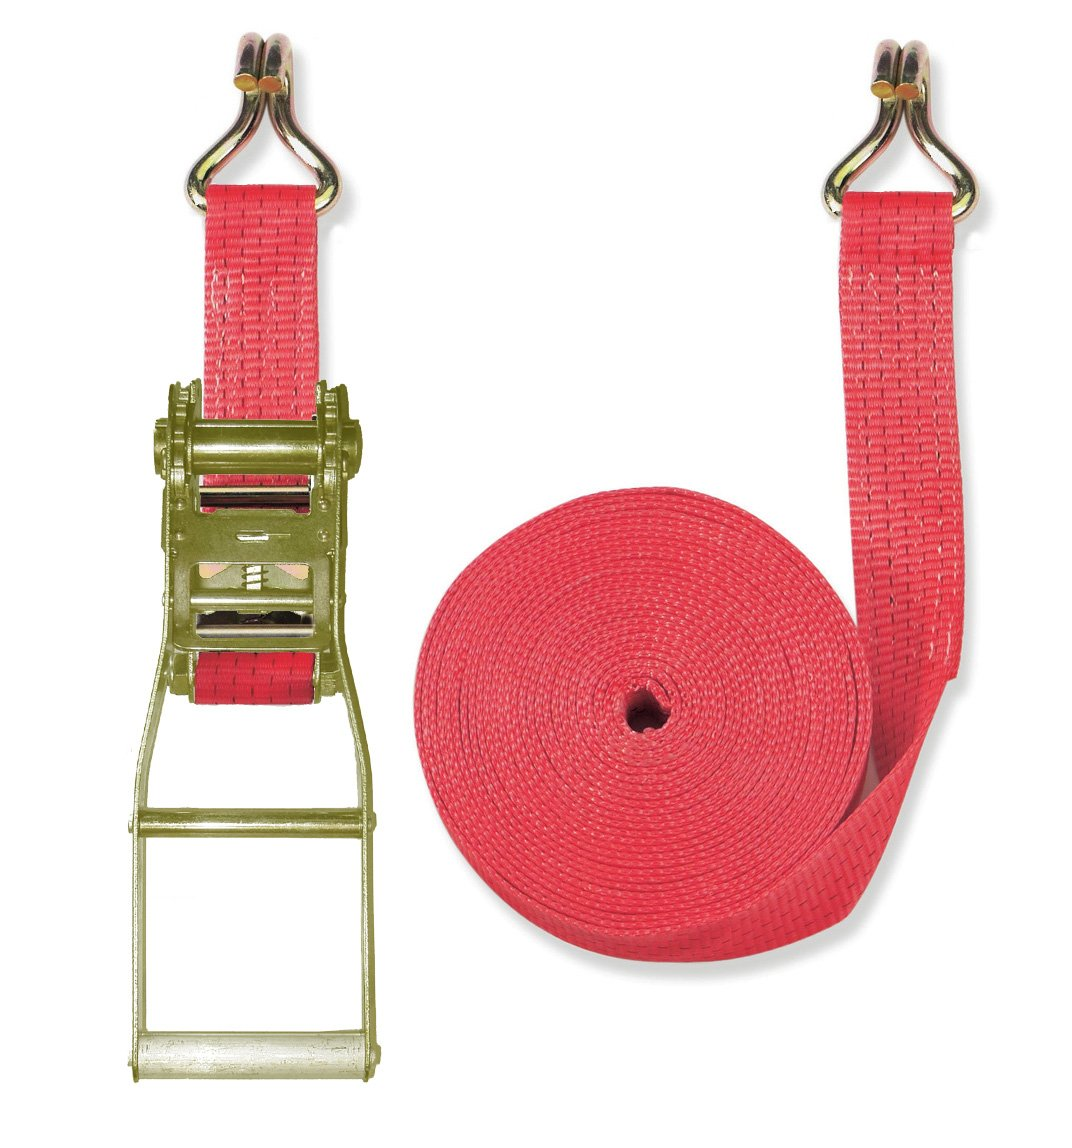 Braun Lashing Strap 5000 daN Two-Piece Colour Red 8 m Length 50 mm in Width with Long Lever Ratchet and Twin J Hooks Braun GmbH - Slackstar G2500-2-800+4030